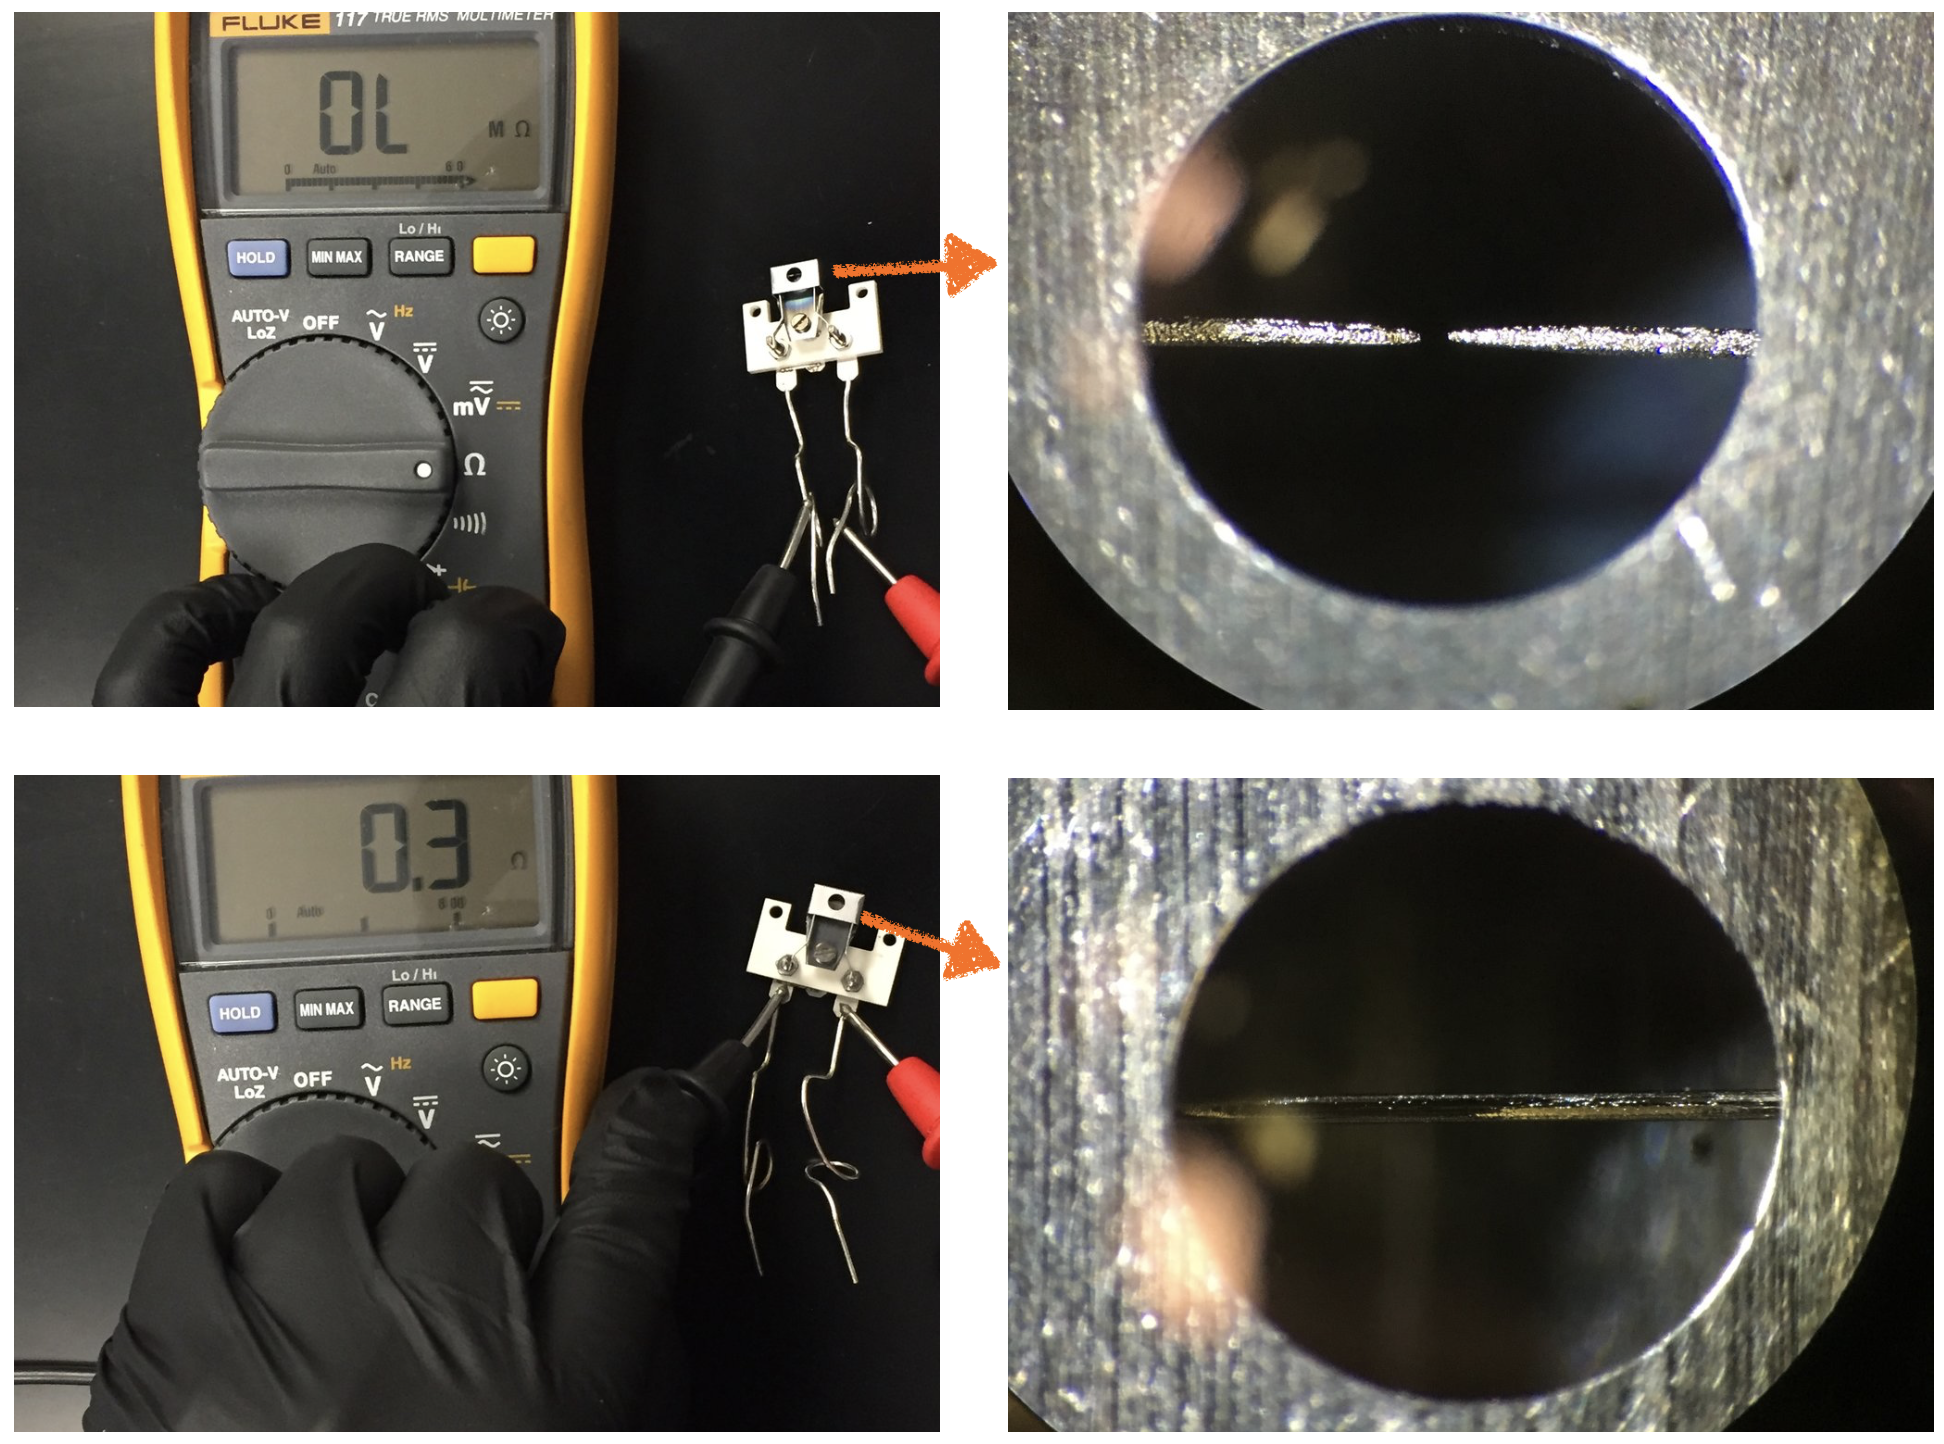 Continuity is broken in the faulty filament and you can see that its tungsten wire is broken (top two images) whereas the new filament (below) displays a resistance of 0.3Ω and contains an intact tungsten wire.